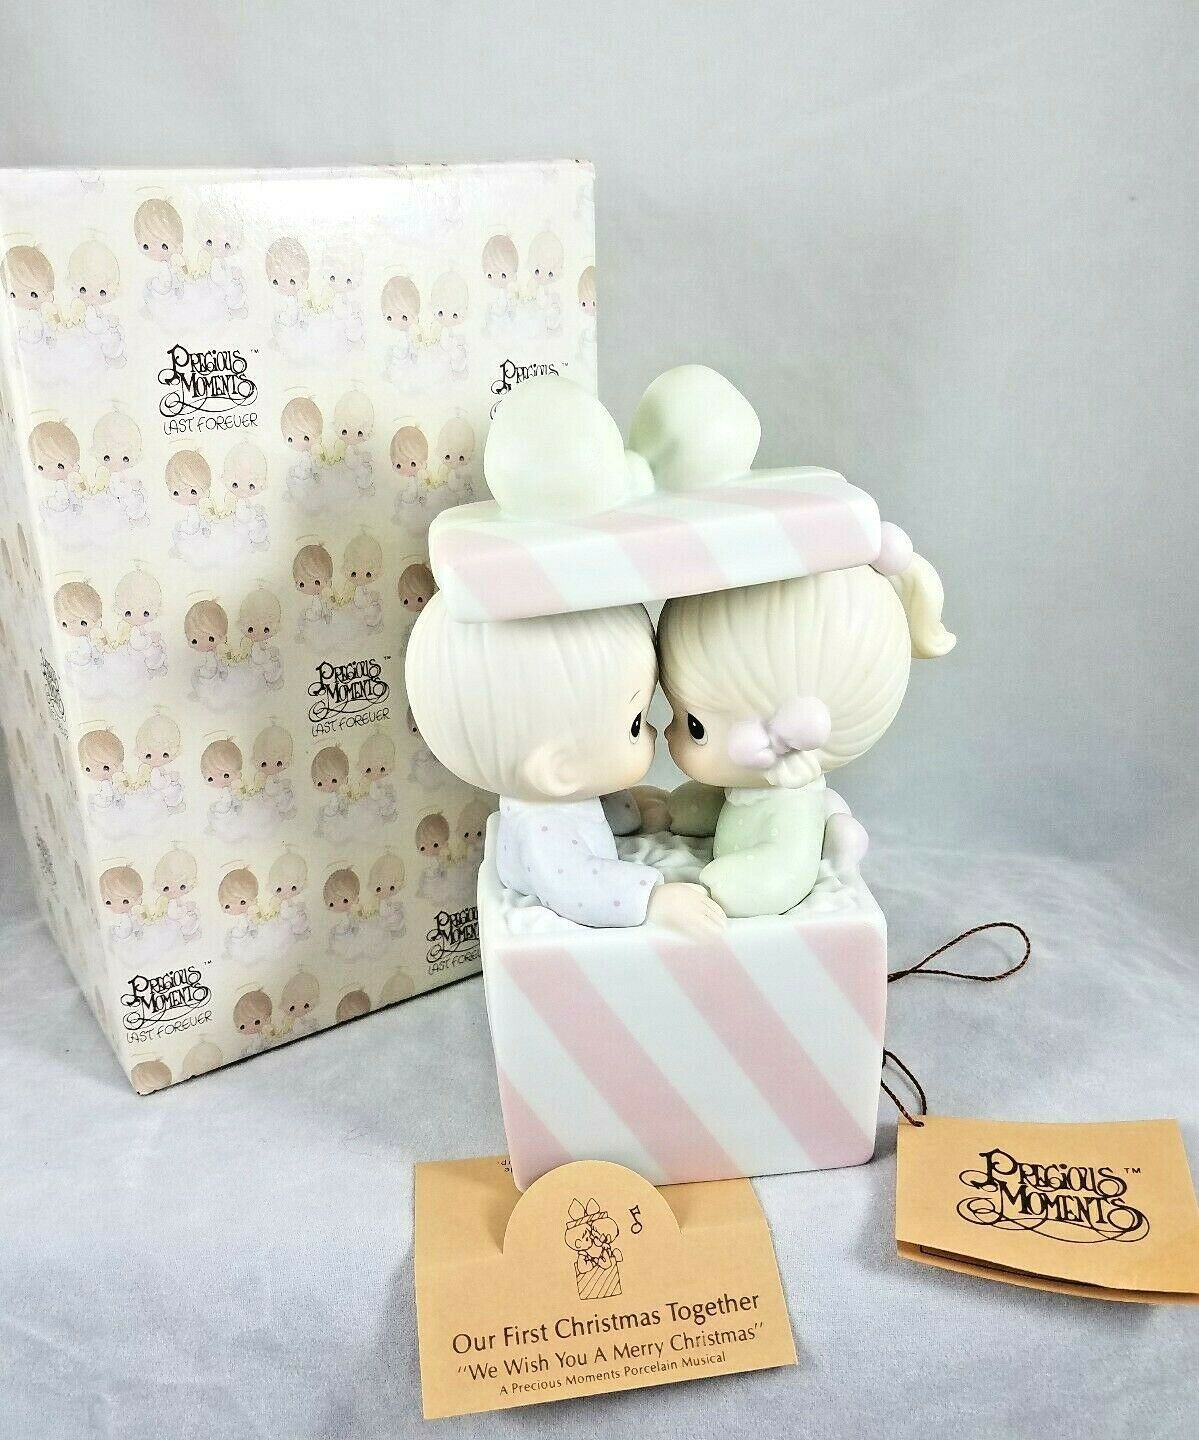 Precious Moments Our First Christmas Together Music Box with Box & Hangtag - $24.99